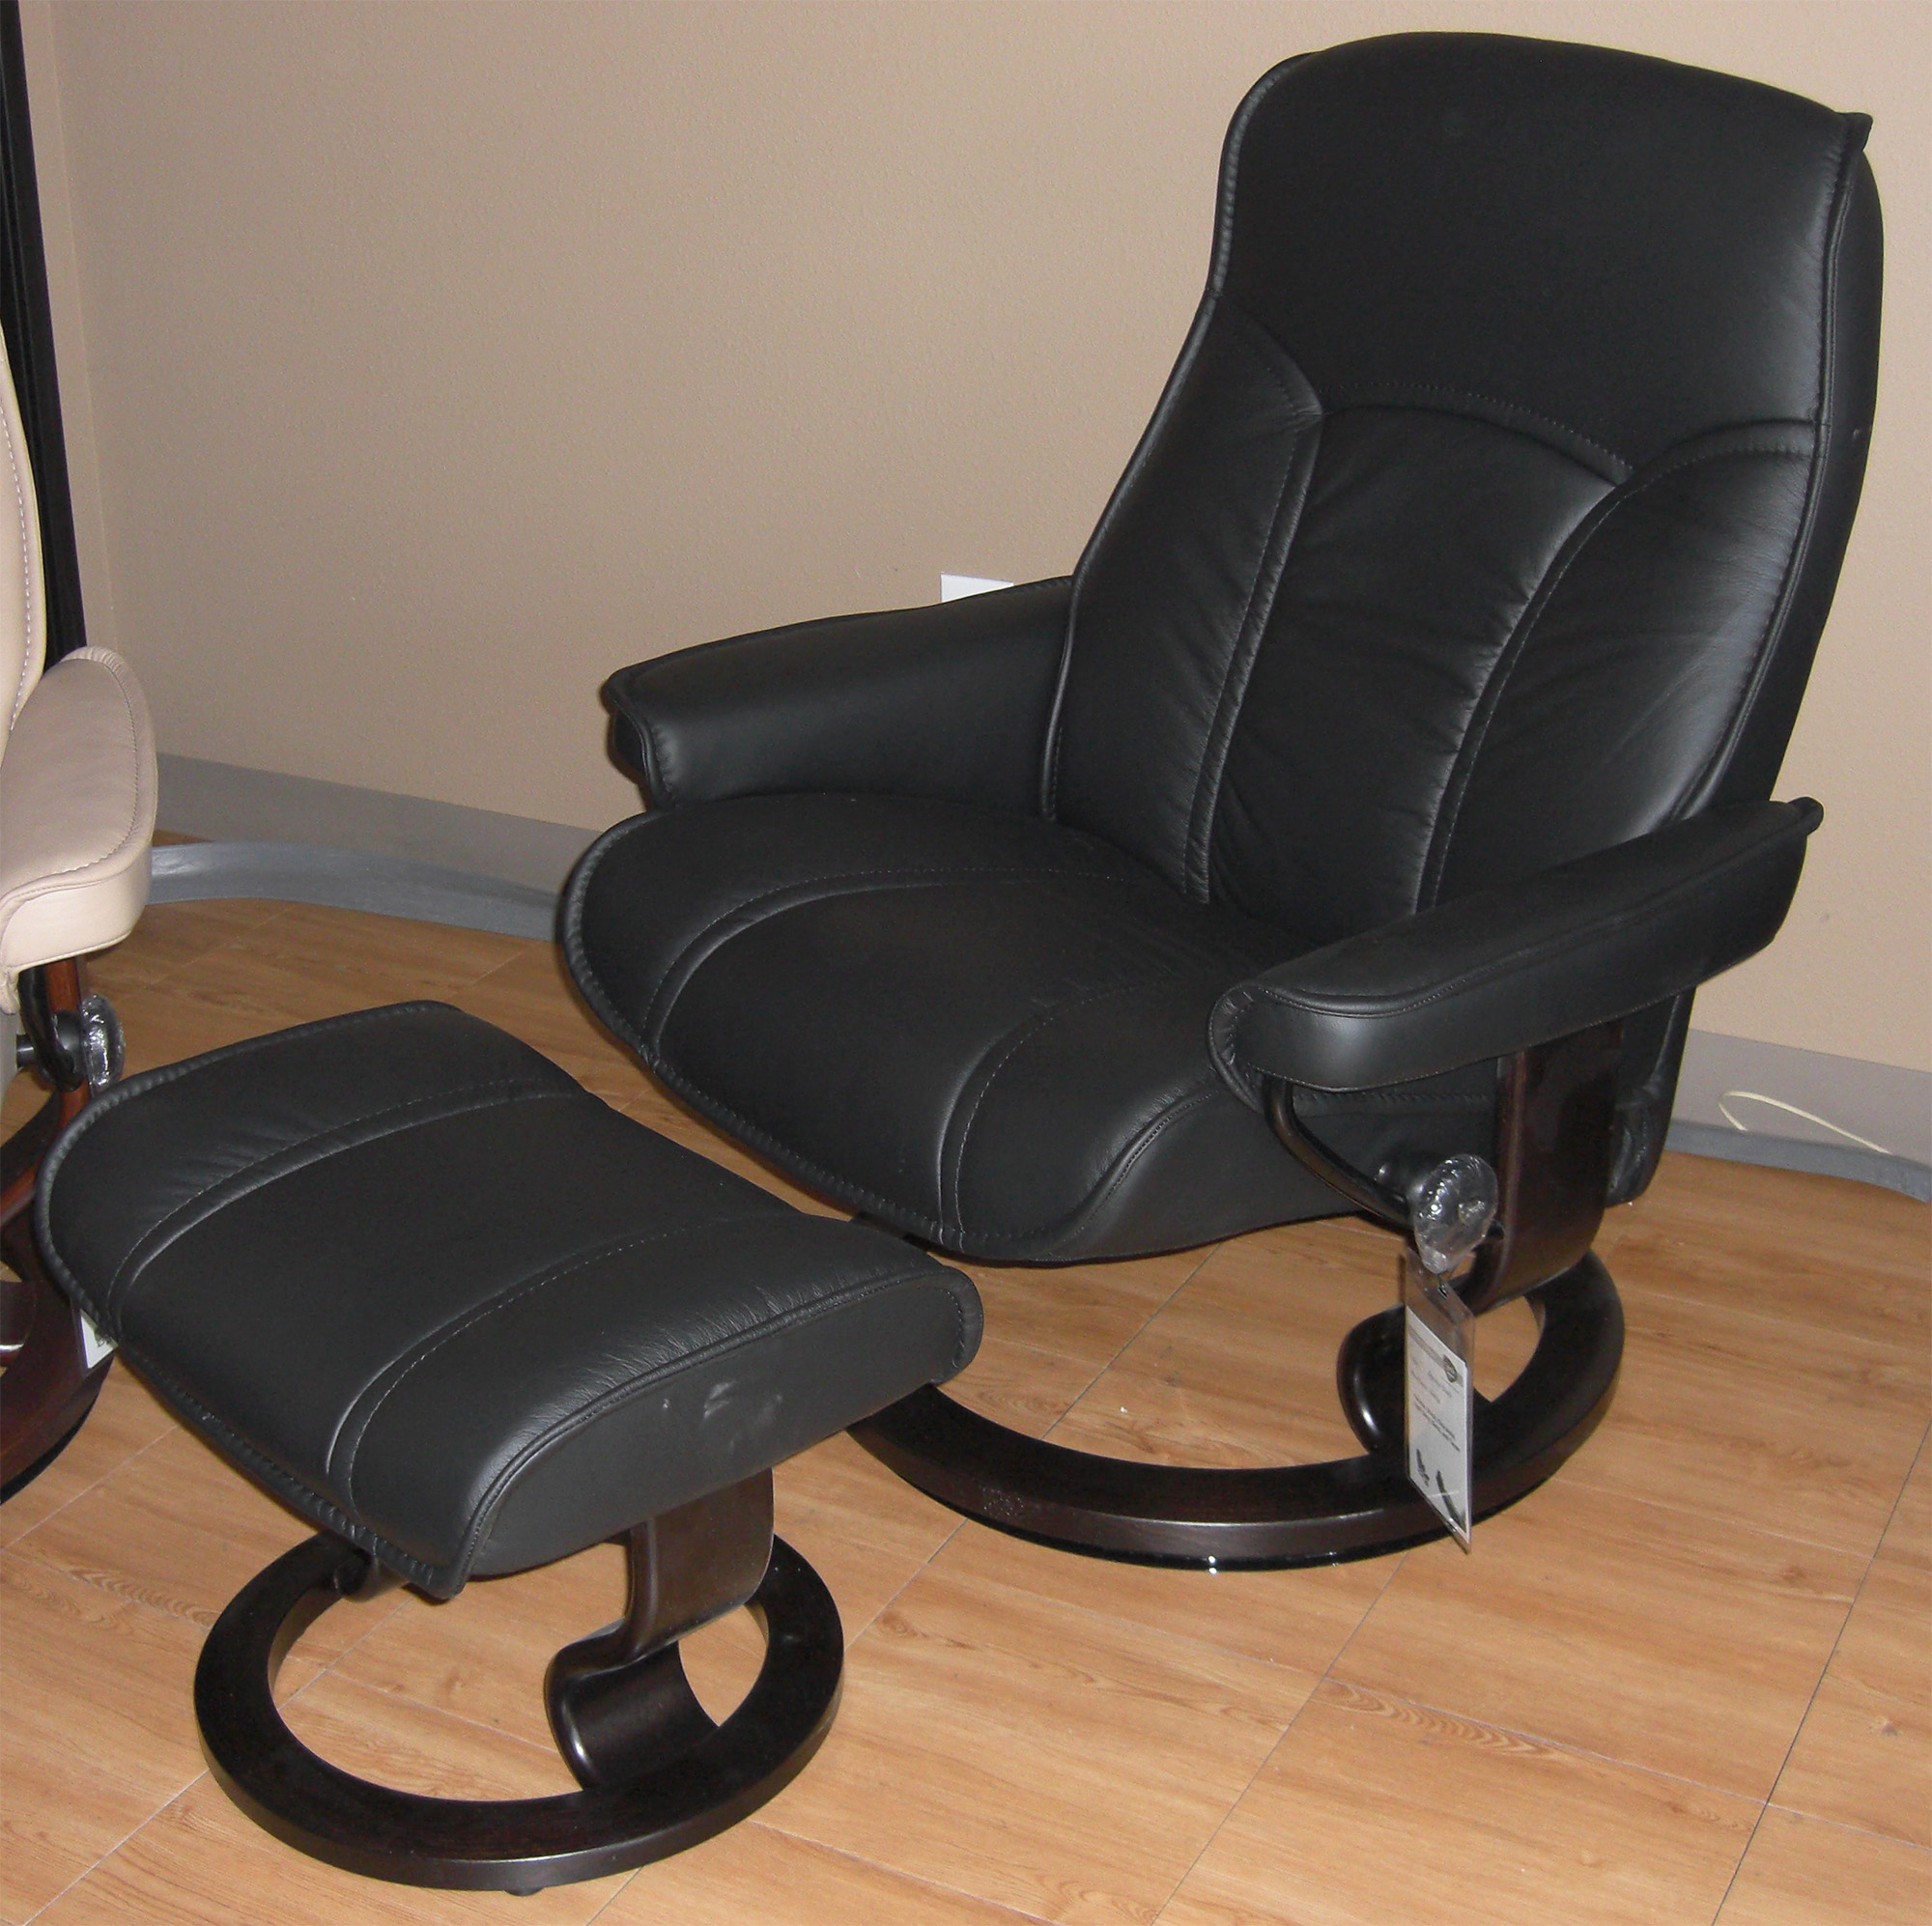 Leather Chairs With Ottoman Stressless Senator Paloma Black Leather Recliner Chair And Ottoman By Ekornes